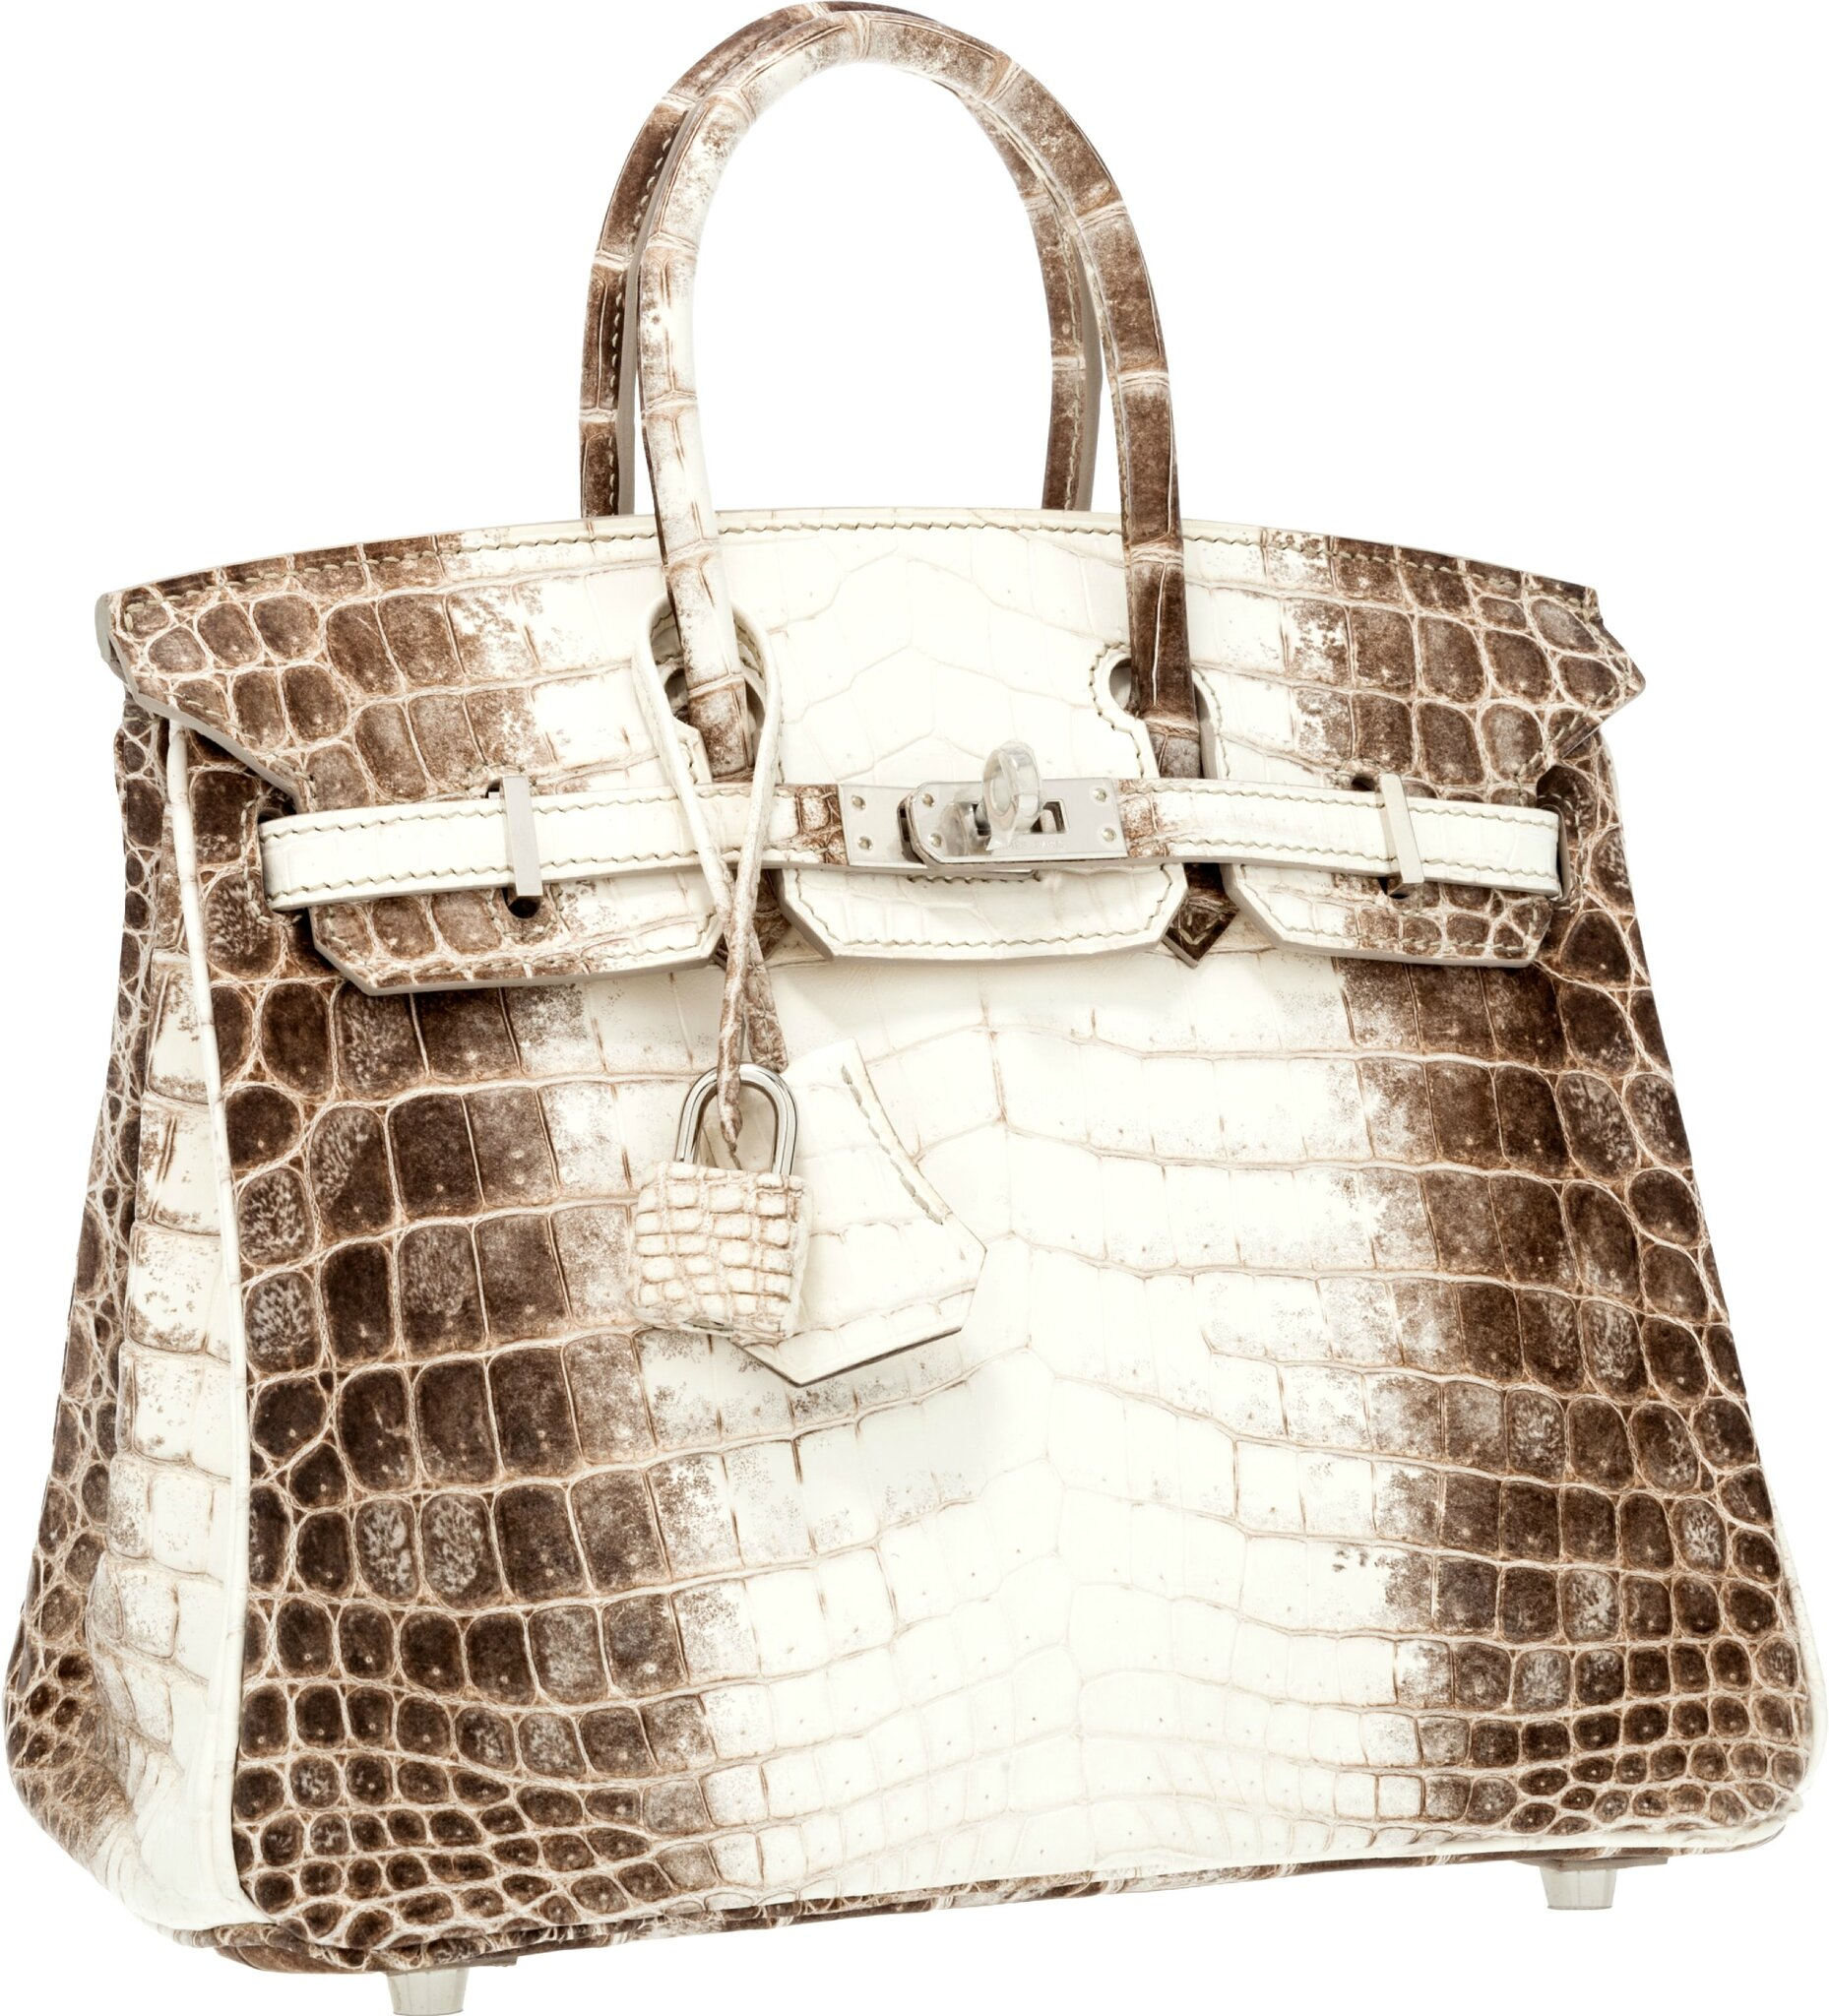 Two Hermes  Himalayan  handbags bookend Heritage New York Luxury  Accessories Auction 796f1a102ac9a